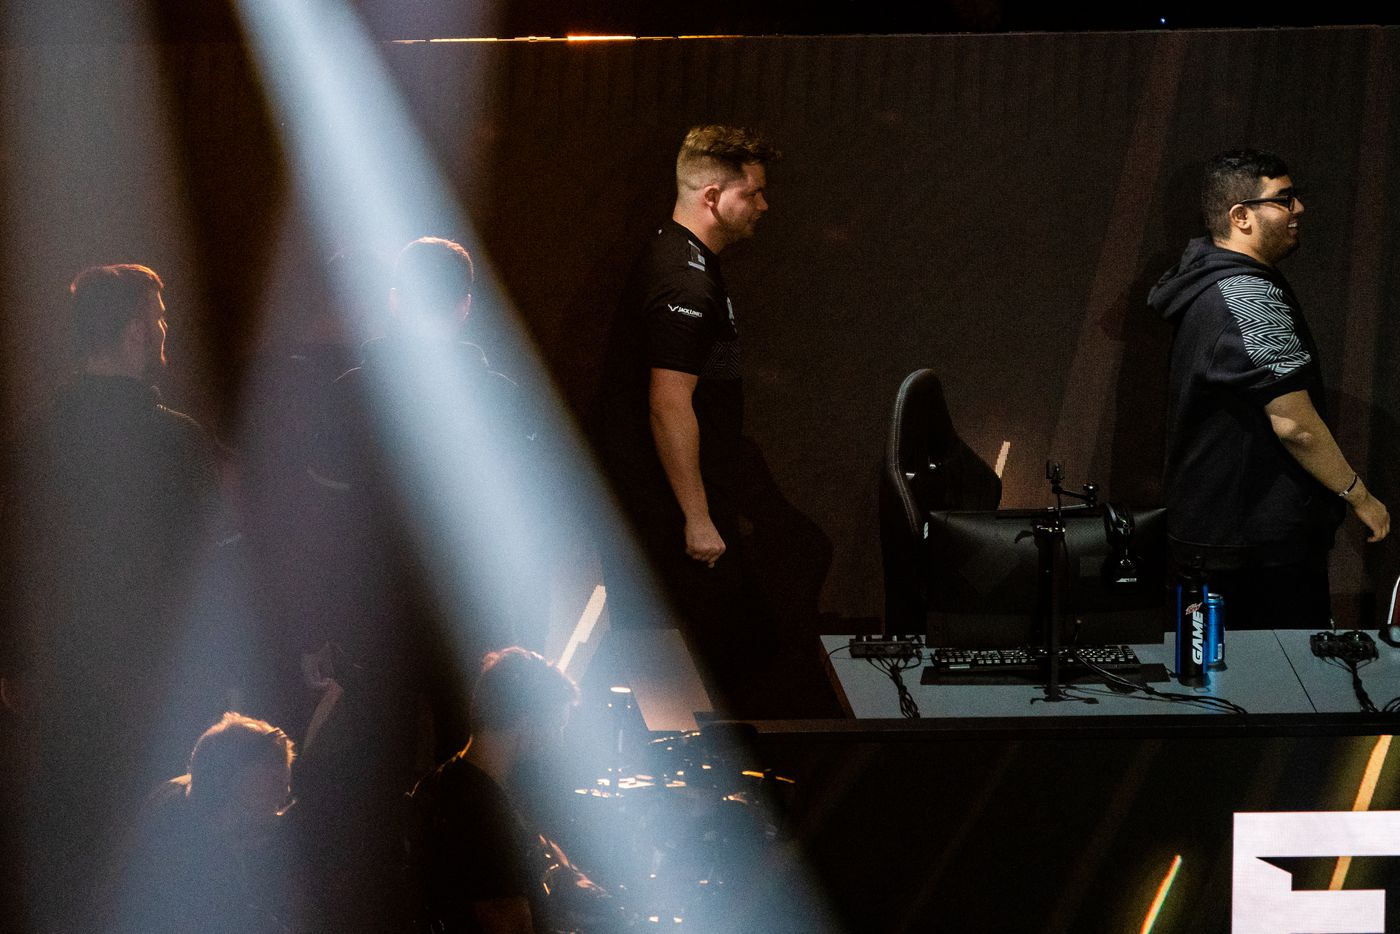 The Dallas Empire is introduced at the start winners final of the Call of Duty league playoffs against the Atlanta FaZe  at the Galen Center on Saturday, August 21, 2021 in Los Angeles, California. The Empire lost to FaZe 0 - 3 in their first match of the day but are still in contention to play in the finals through the elimination finals. (Justin L. Stewart/Special Contributor)